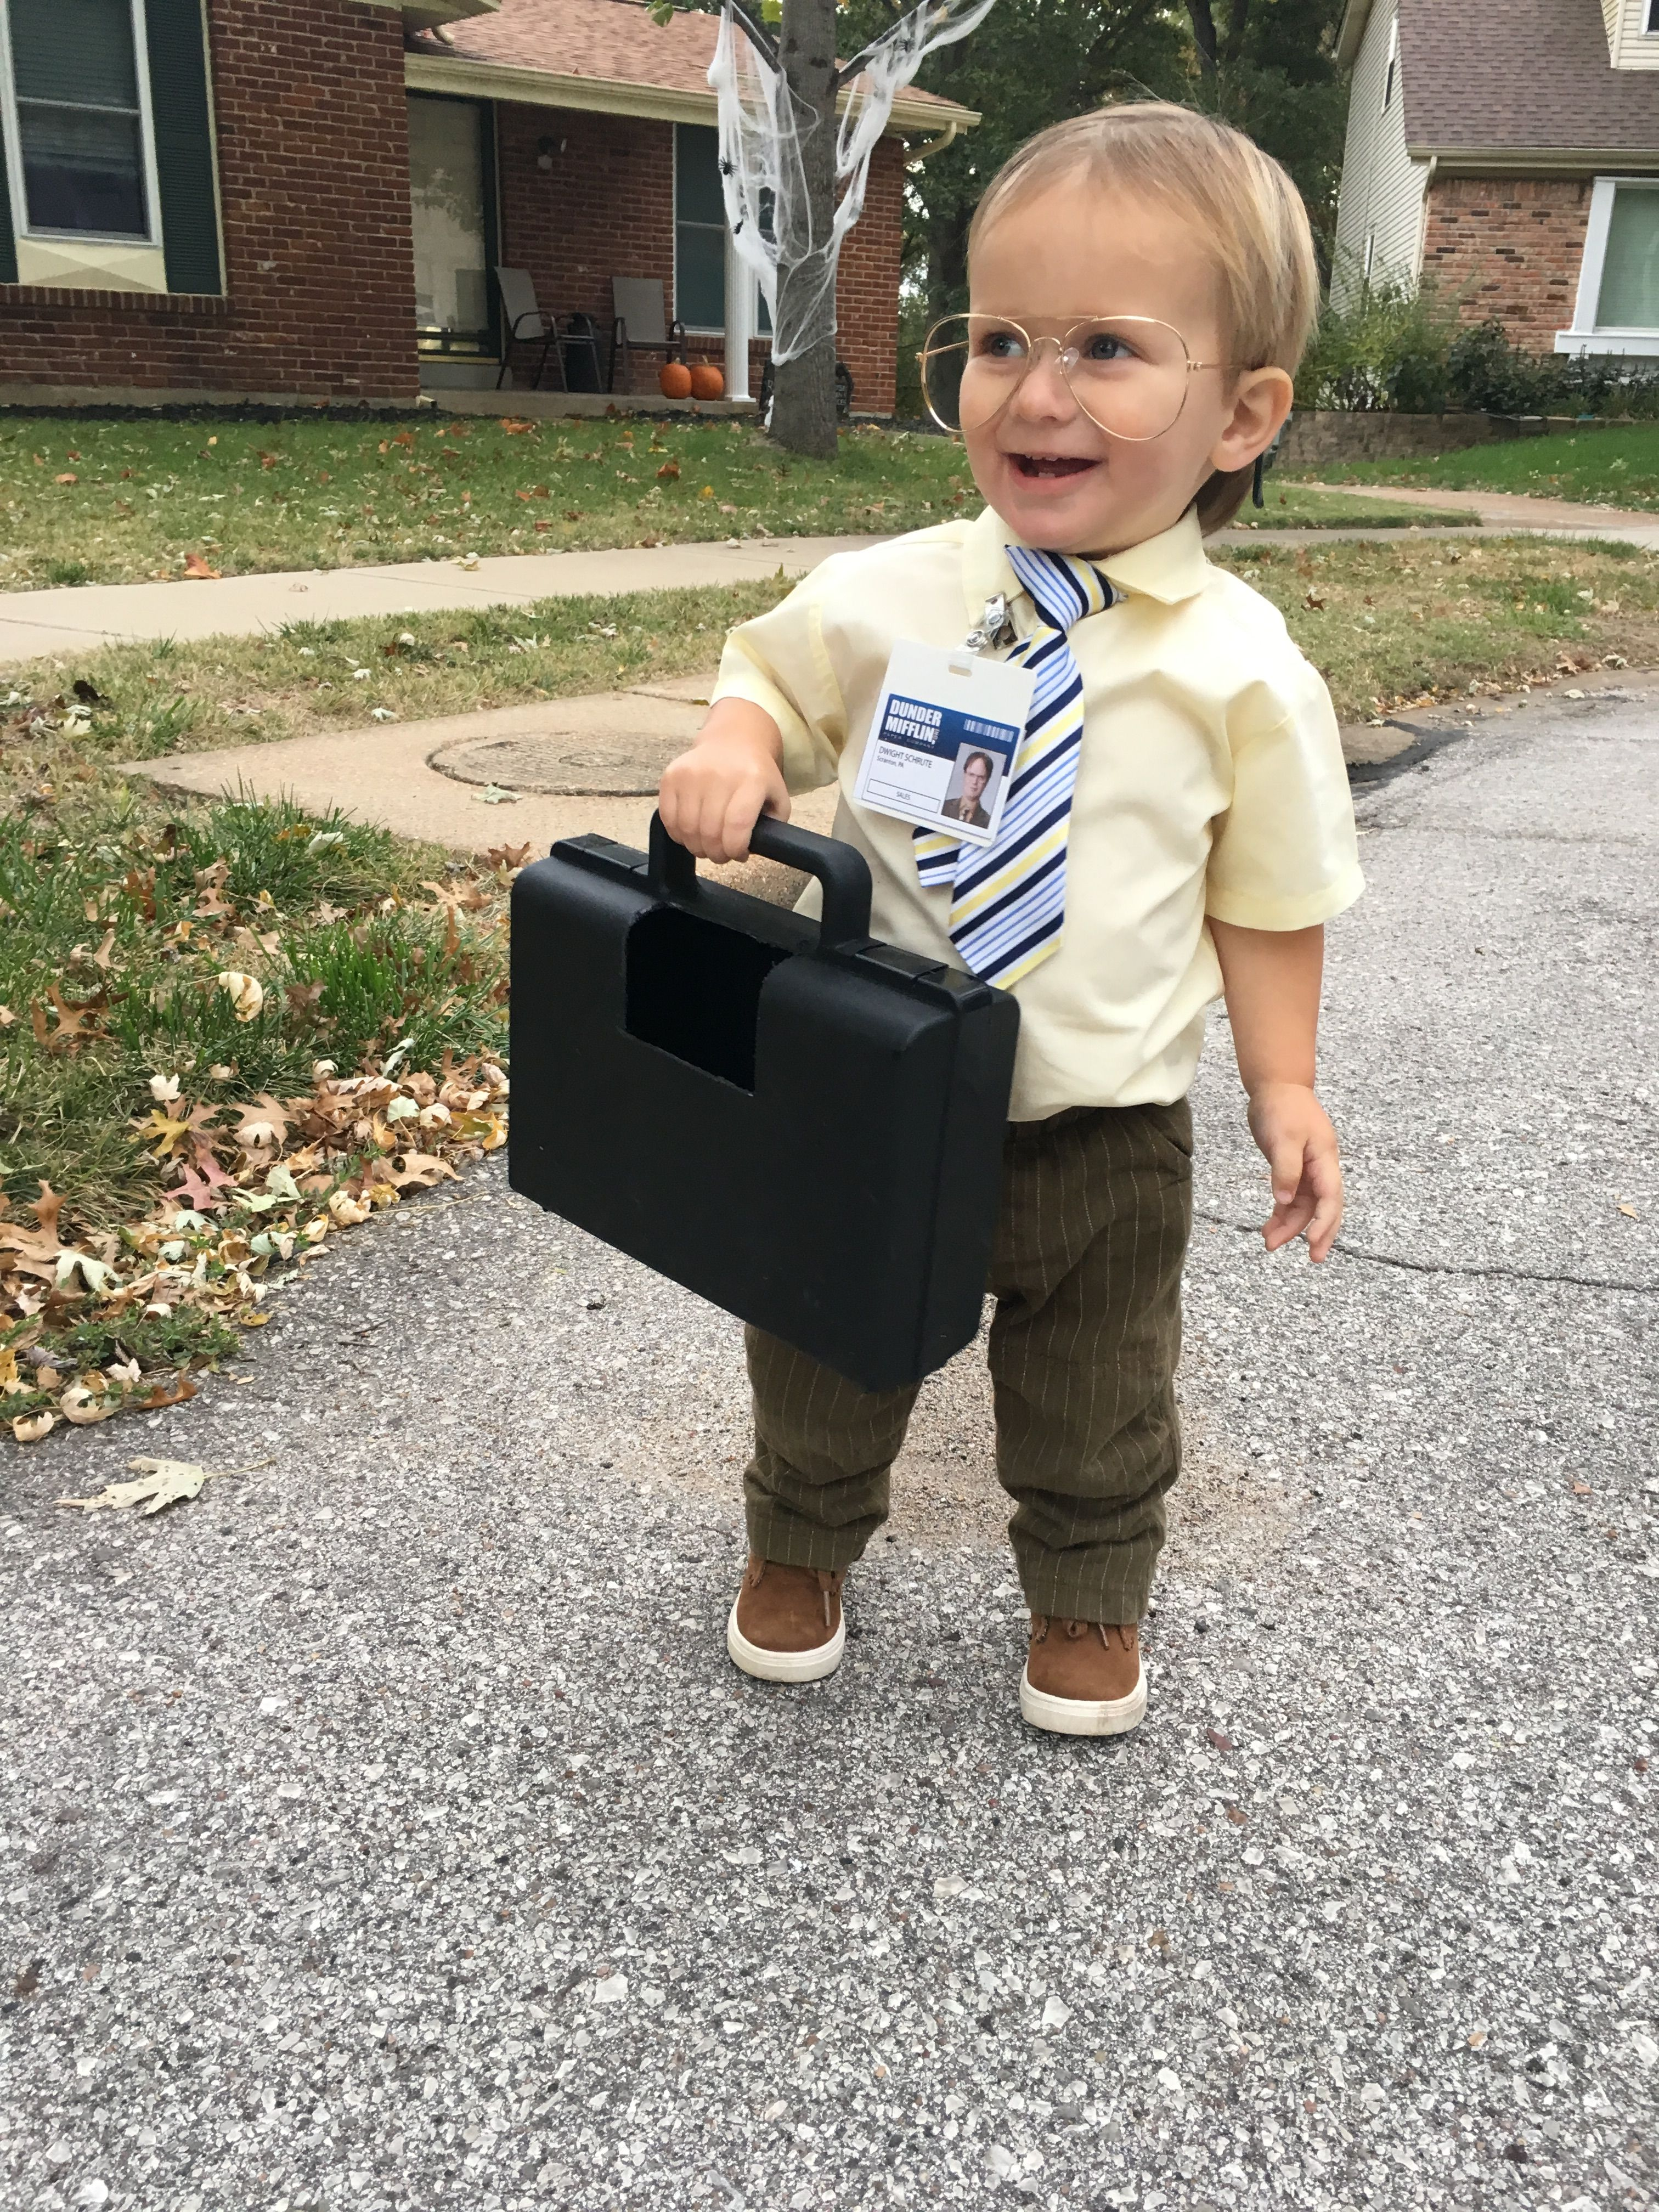 dwight schrute kids costume, the office, halloween costume ideas